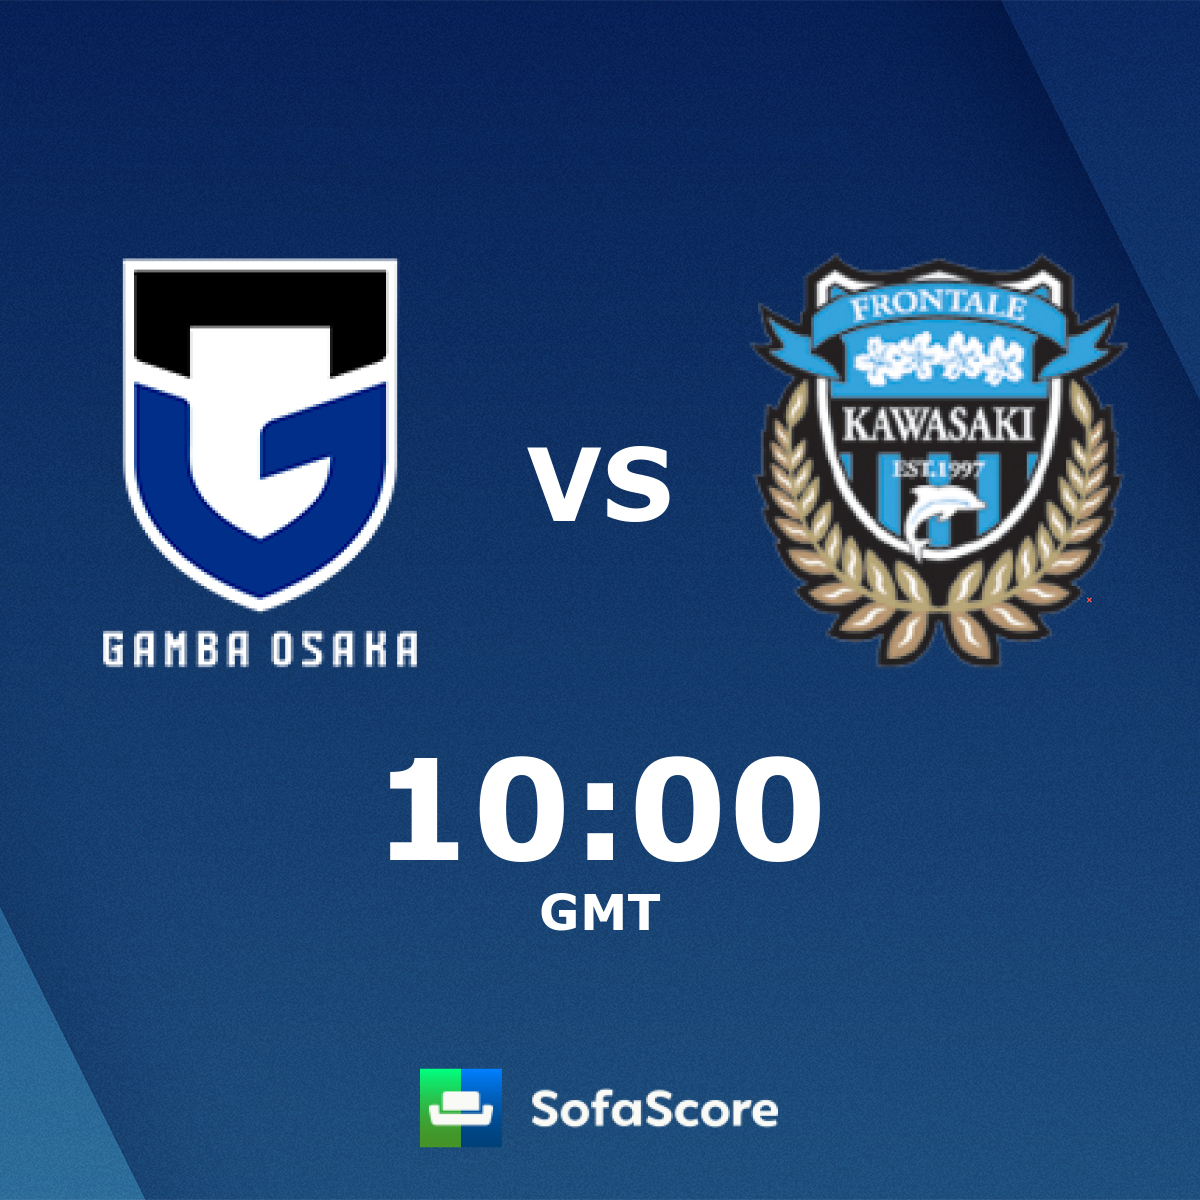 Gamba Osaka Kawasaki Frontale Live Score Video Stream And H2h Results Sofascore